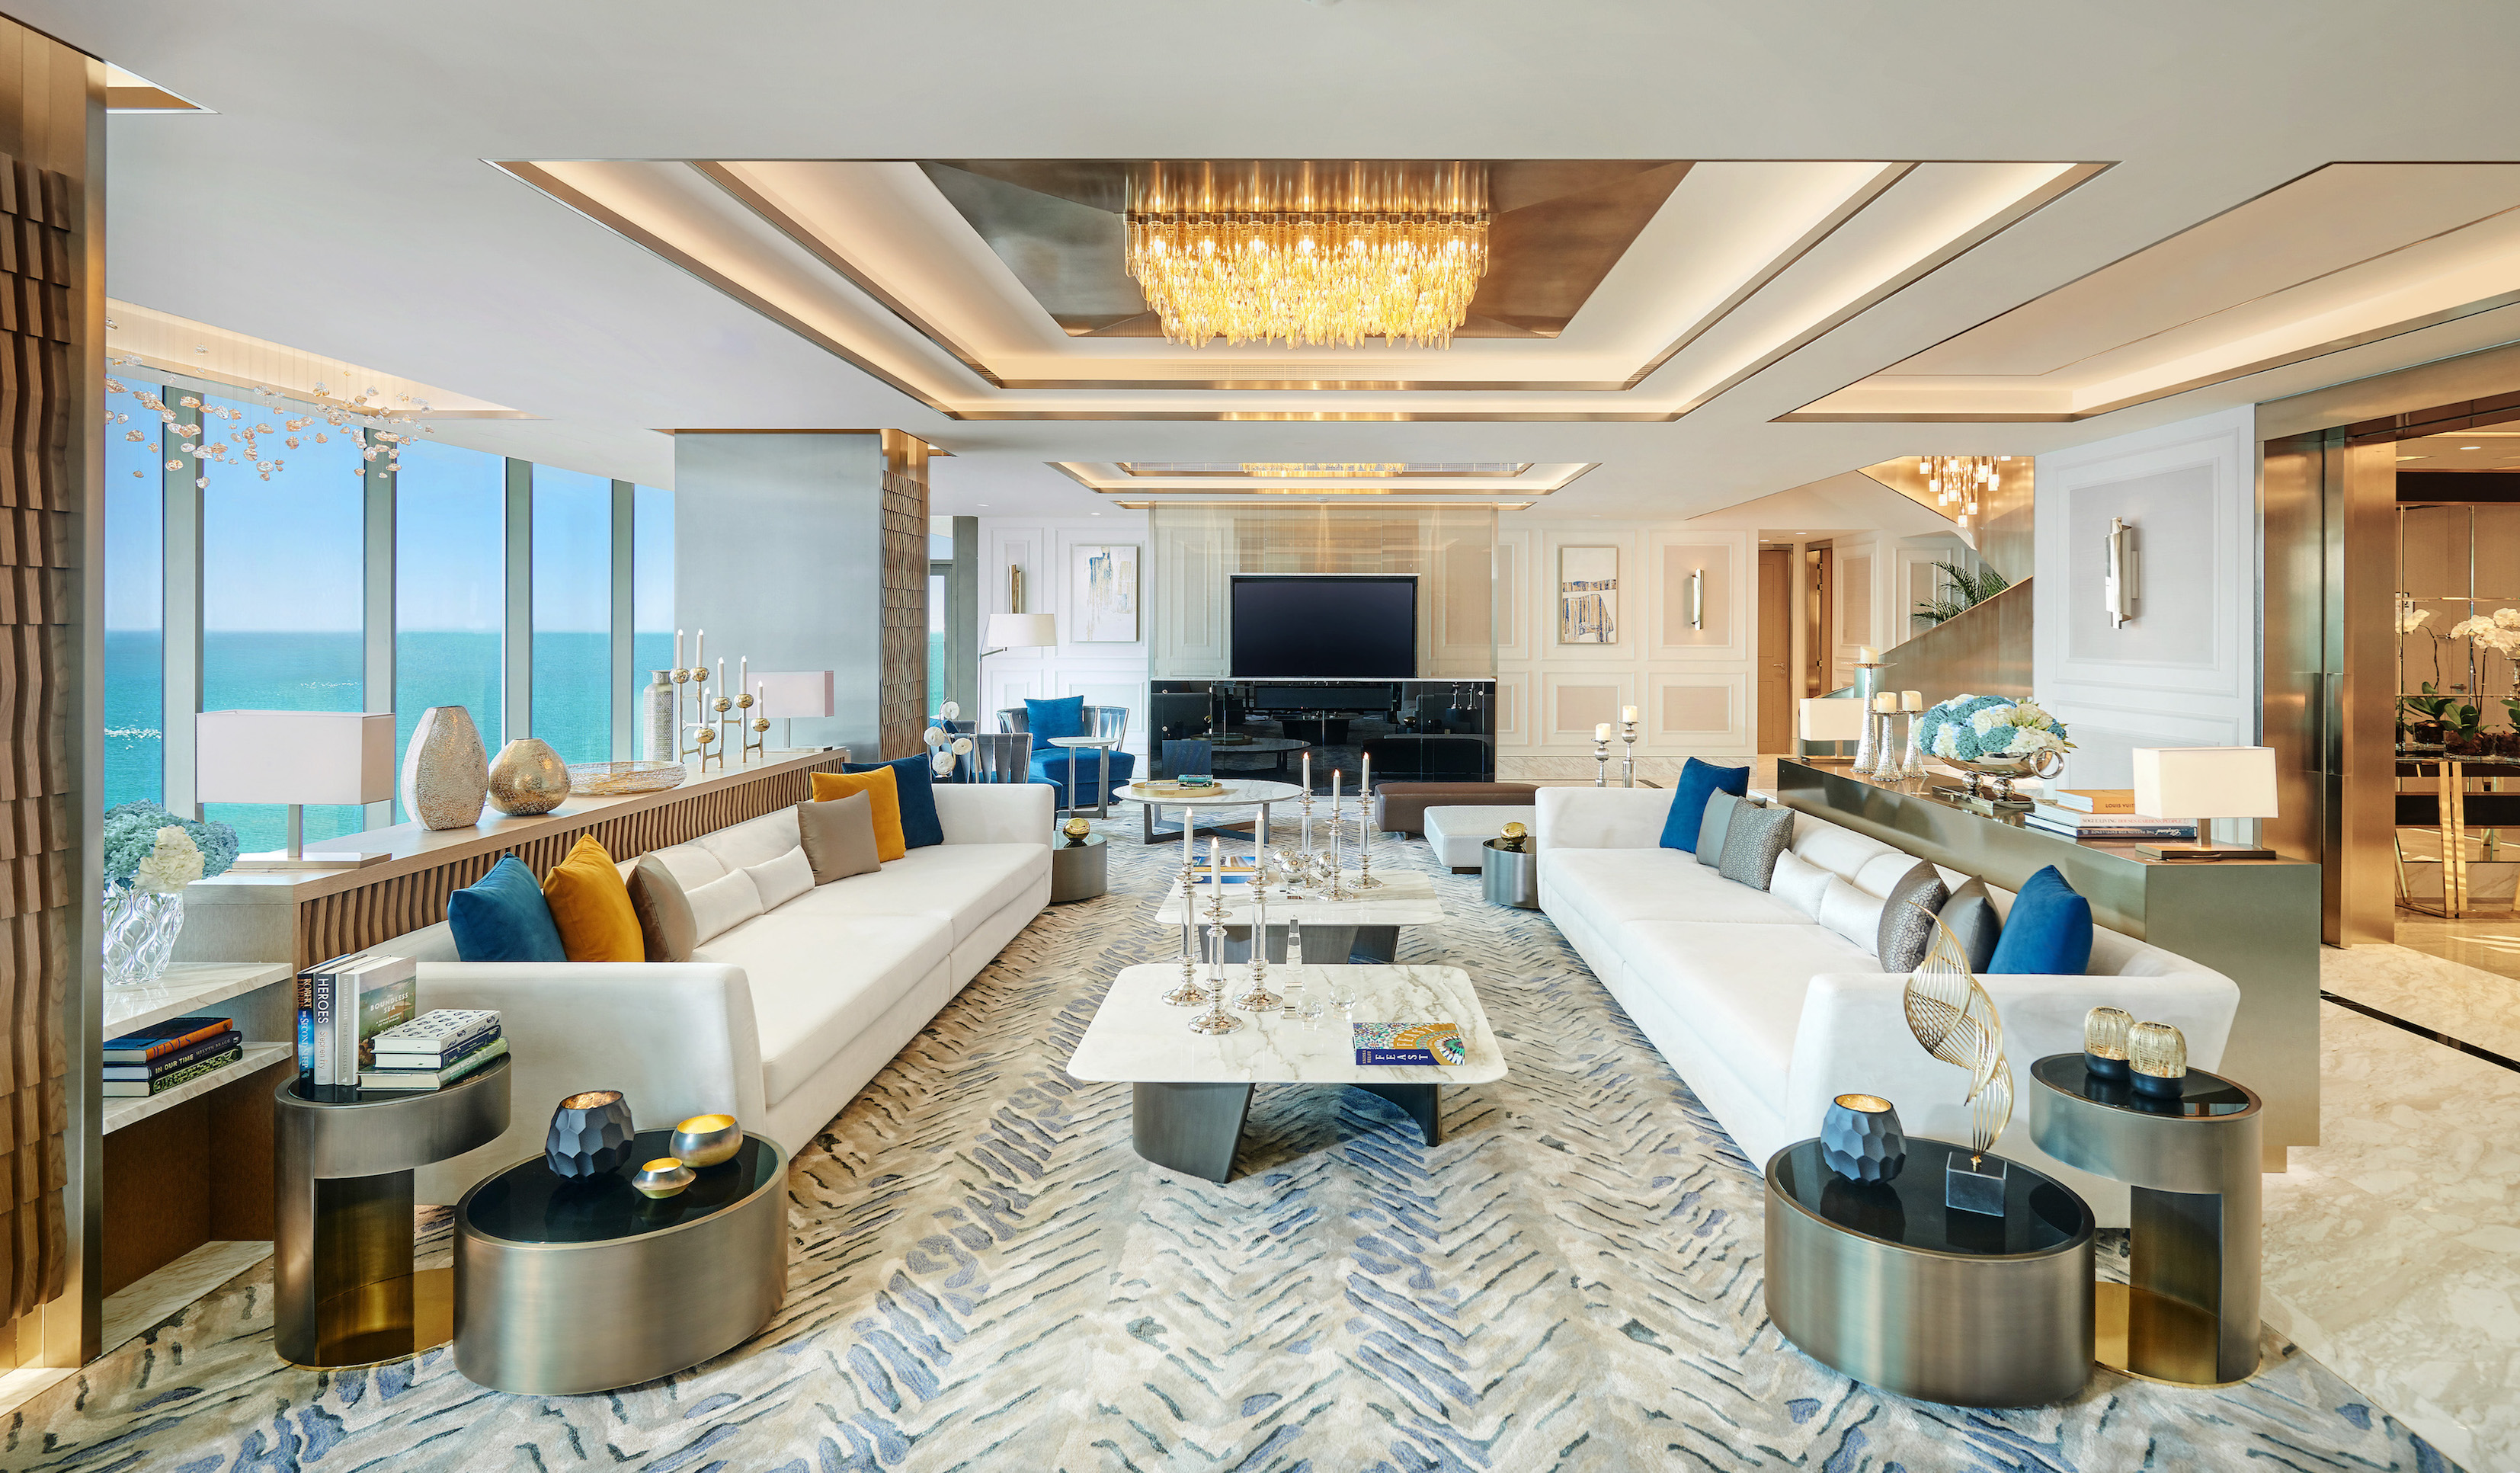 Turn the royal penthouse of the Mandarin Oriental Dubai hotel into your plush home with sweeping views of the sea, a rooftop terrace and a private gym.